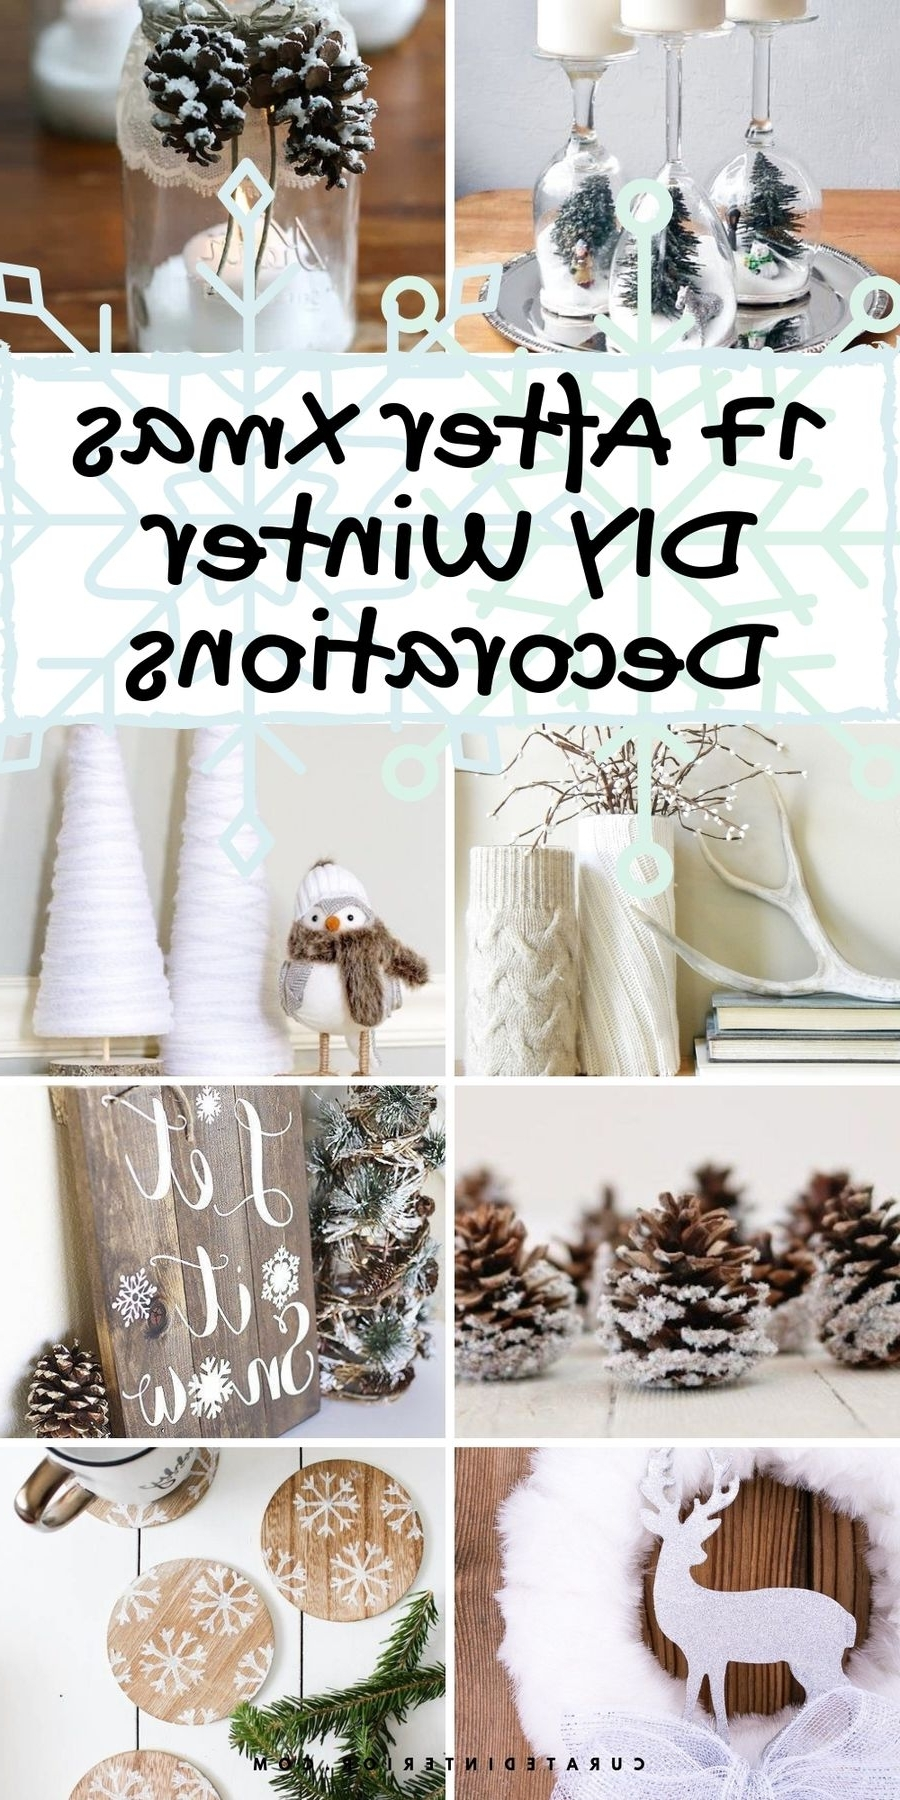 17 Diy Winter Decorations For After Christmas Decorating